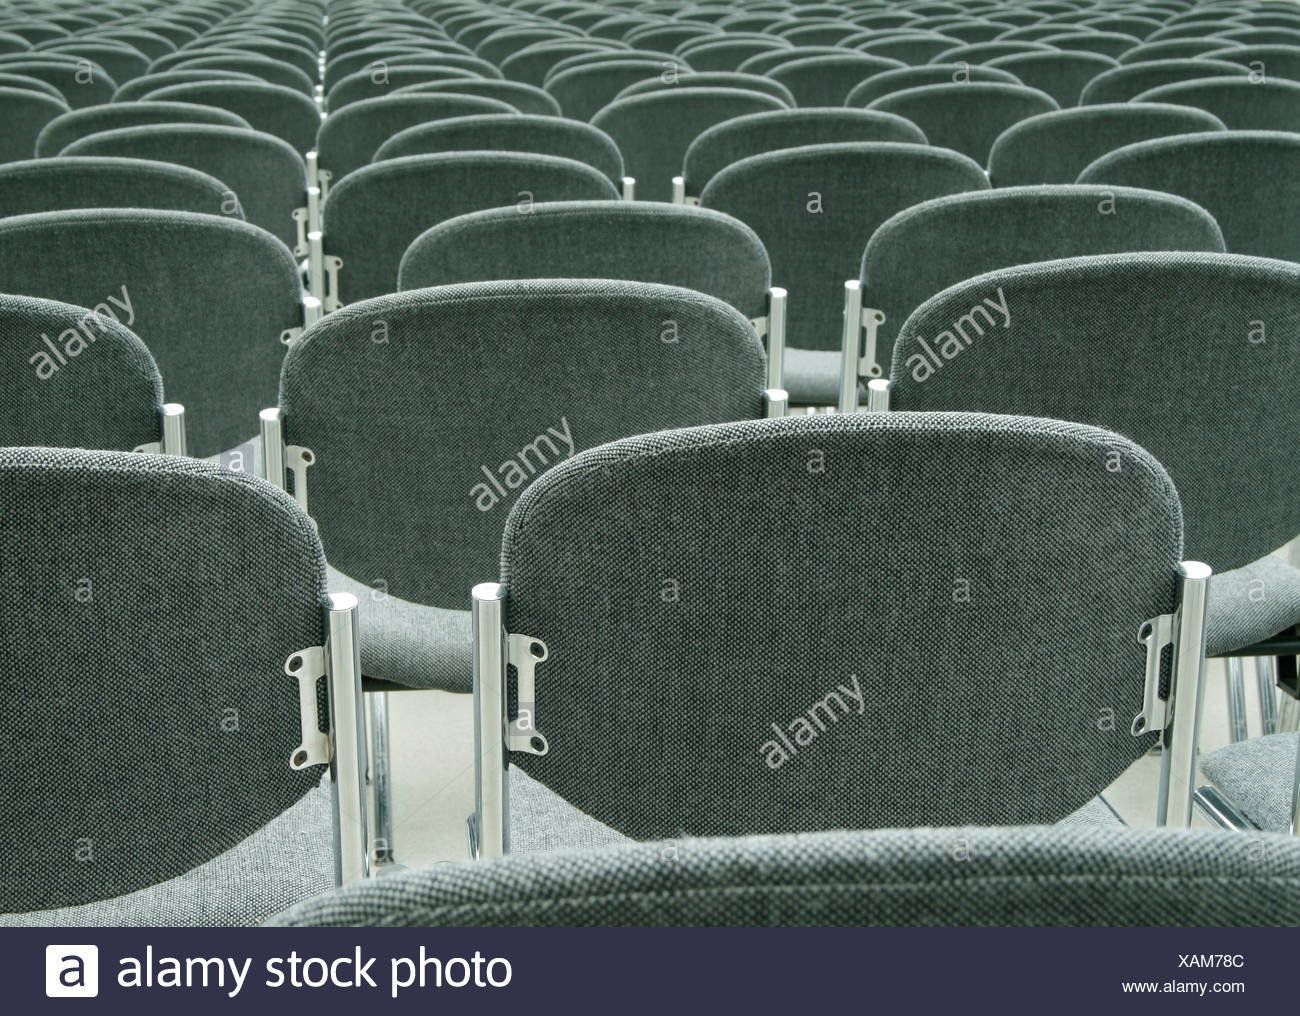 Rows of empty chairs in conference room Stock Photo